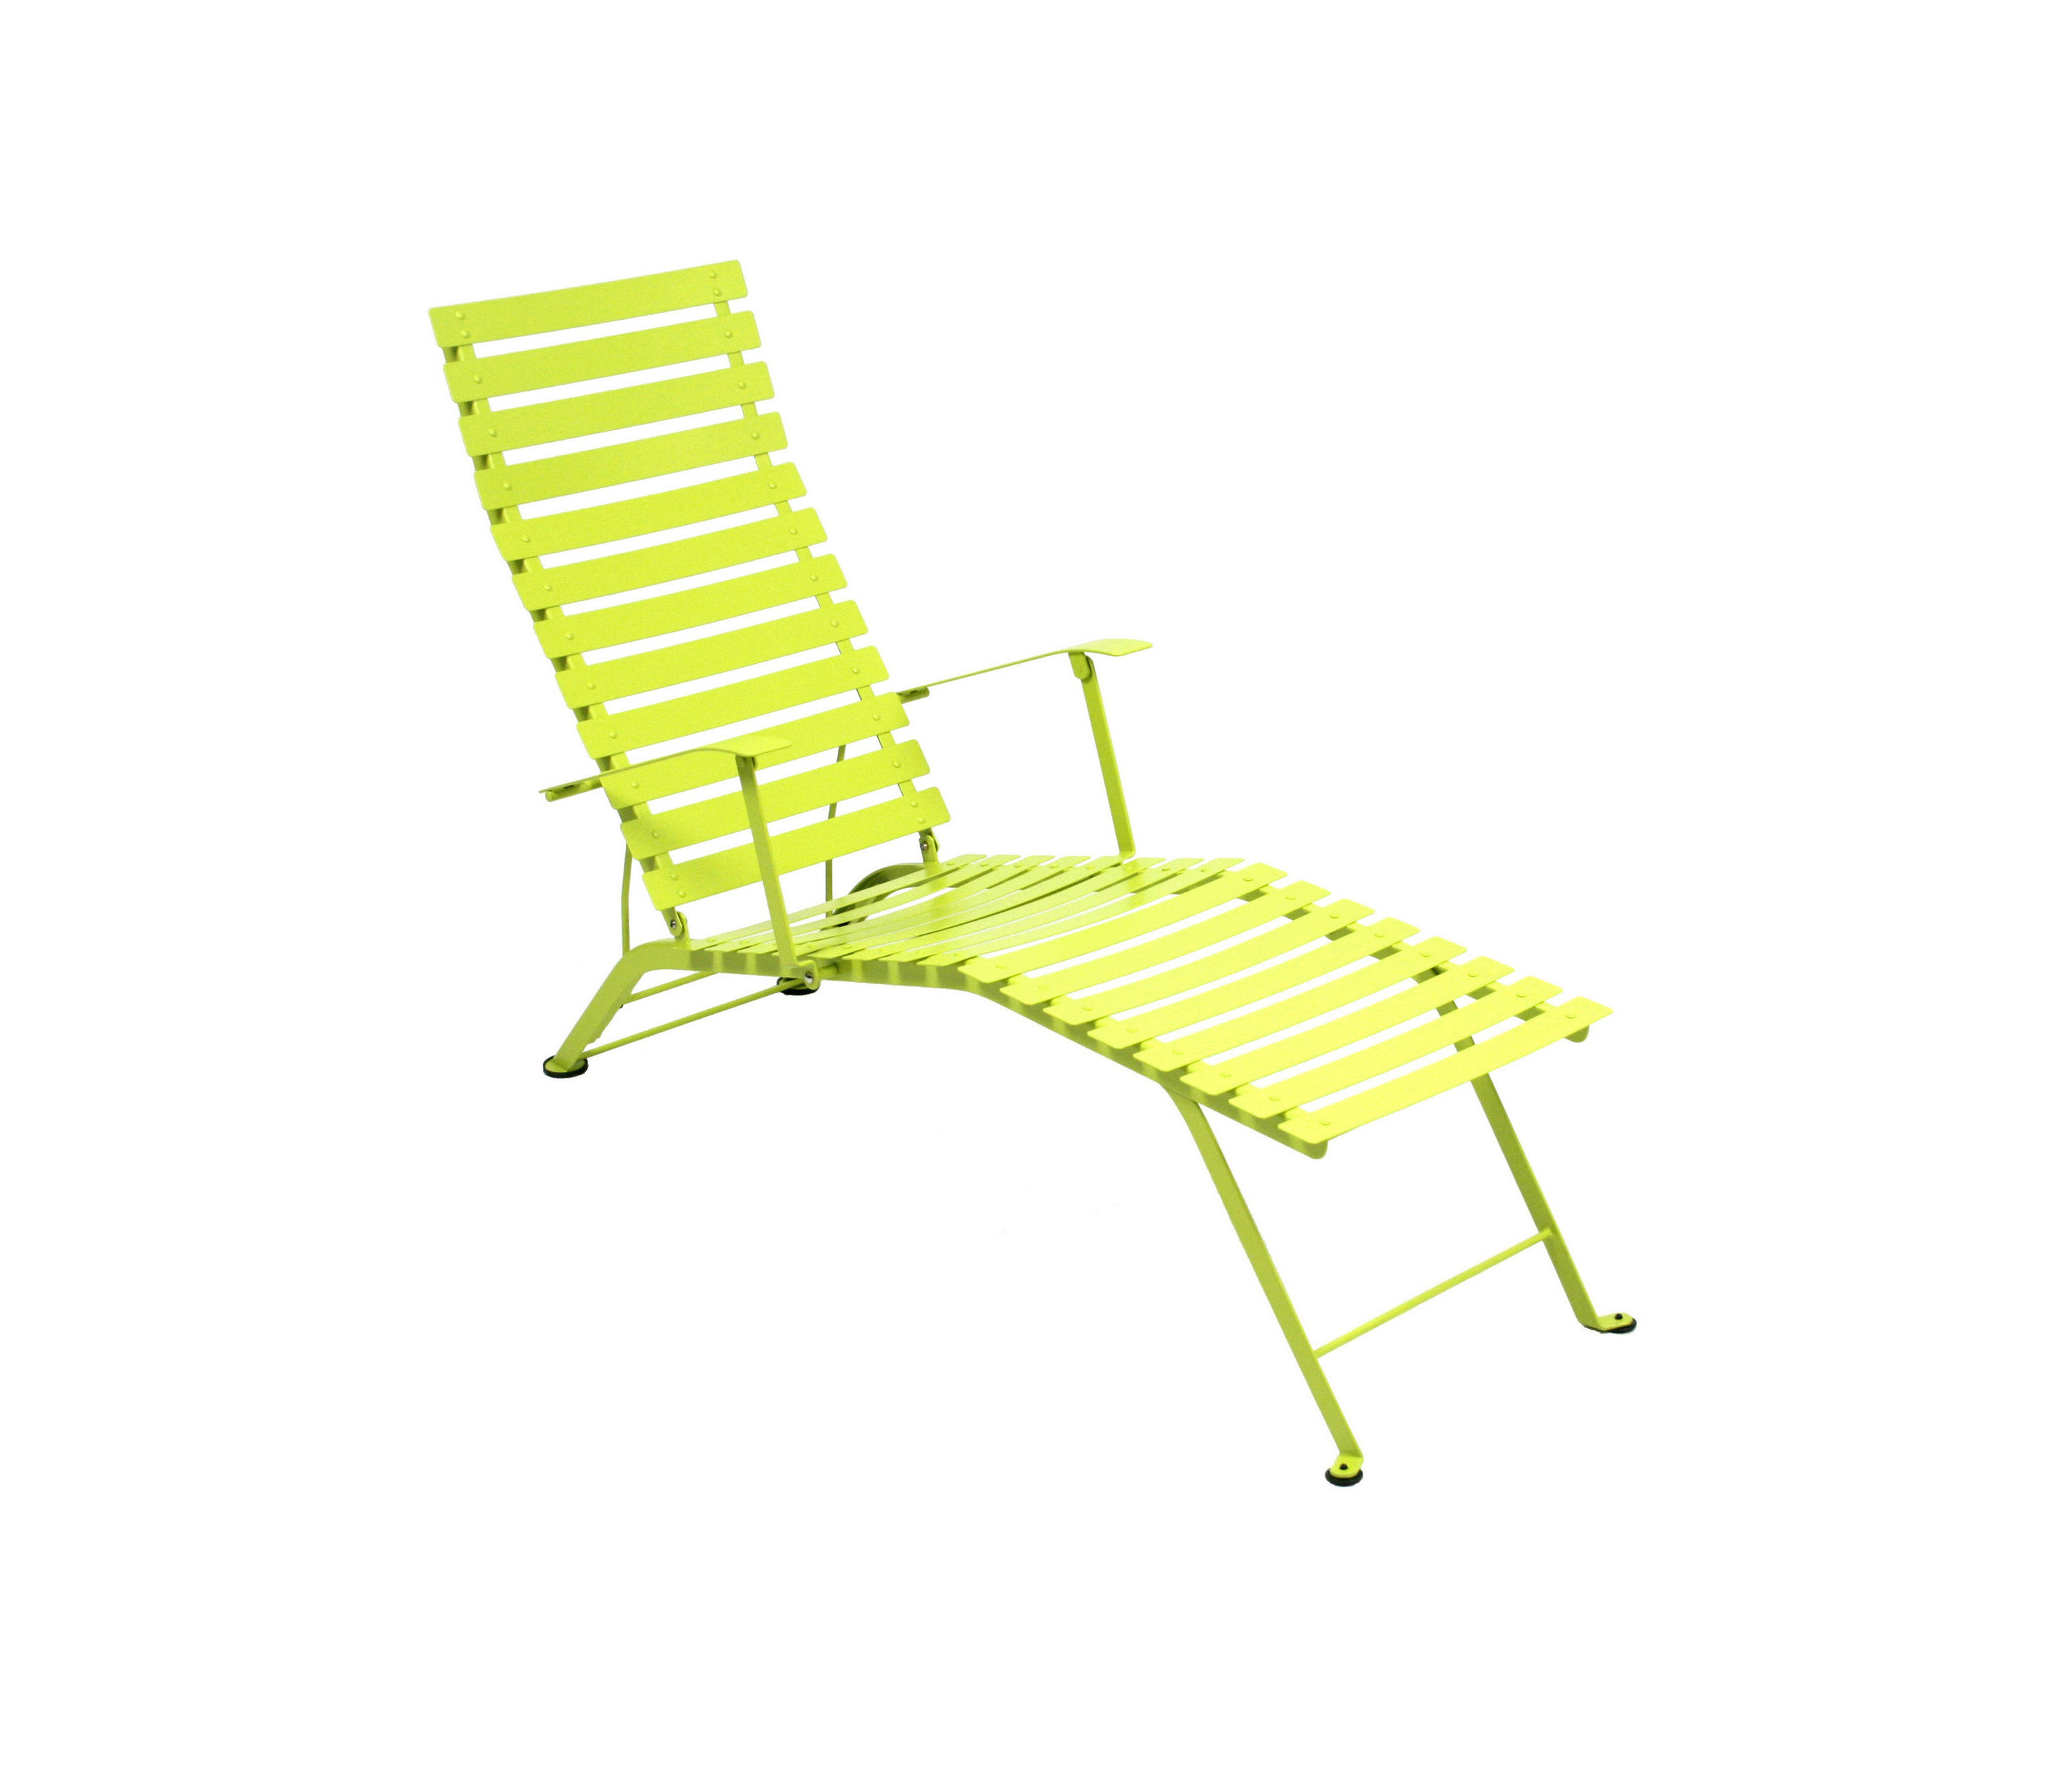 BISTRO ADJUSTABLE CHAISE LONGUE Sun loungers from FERMOB